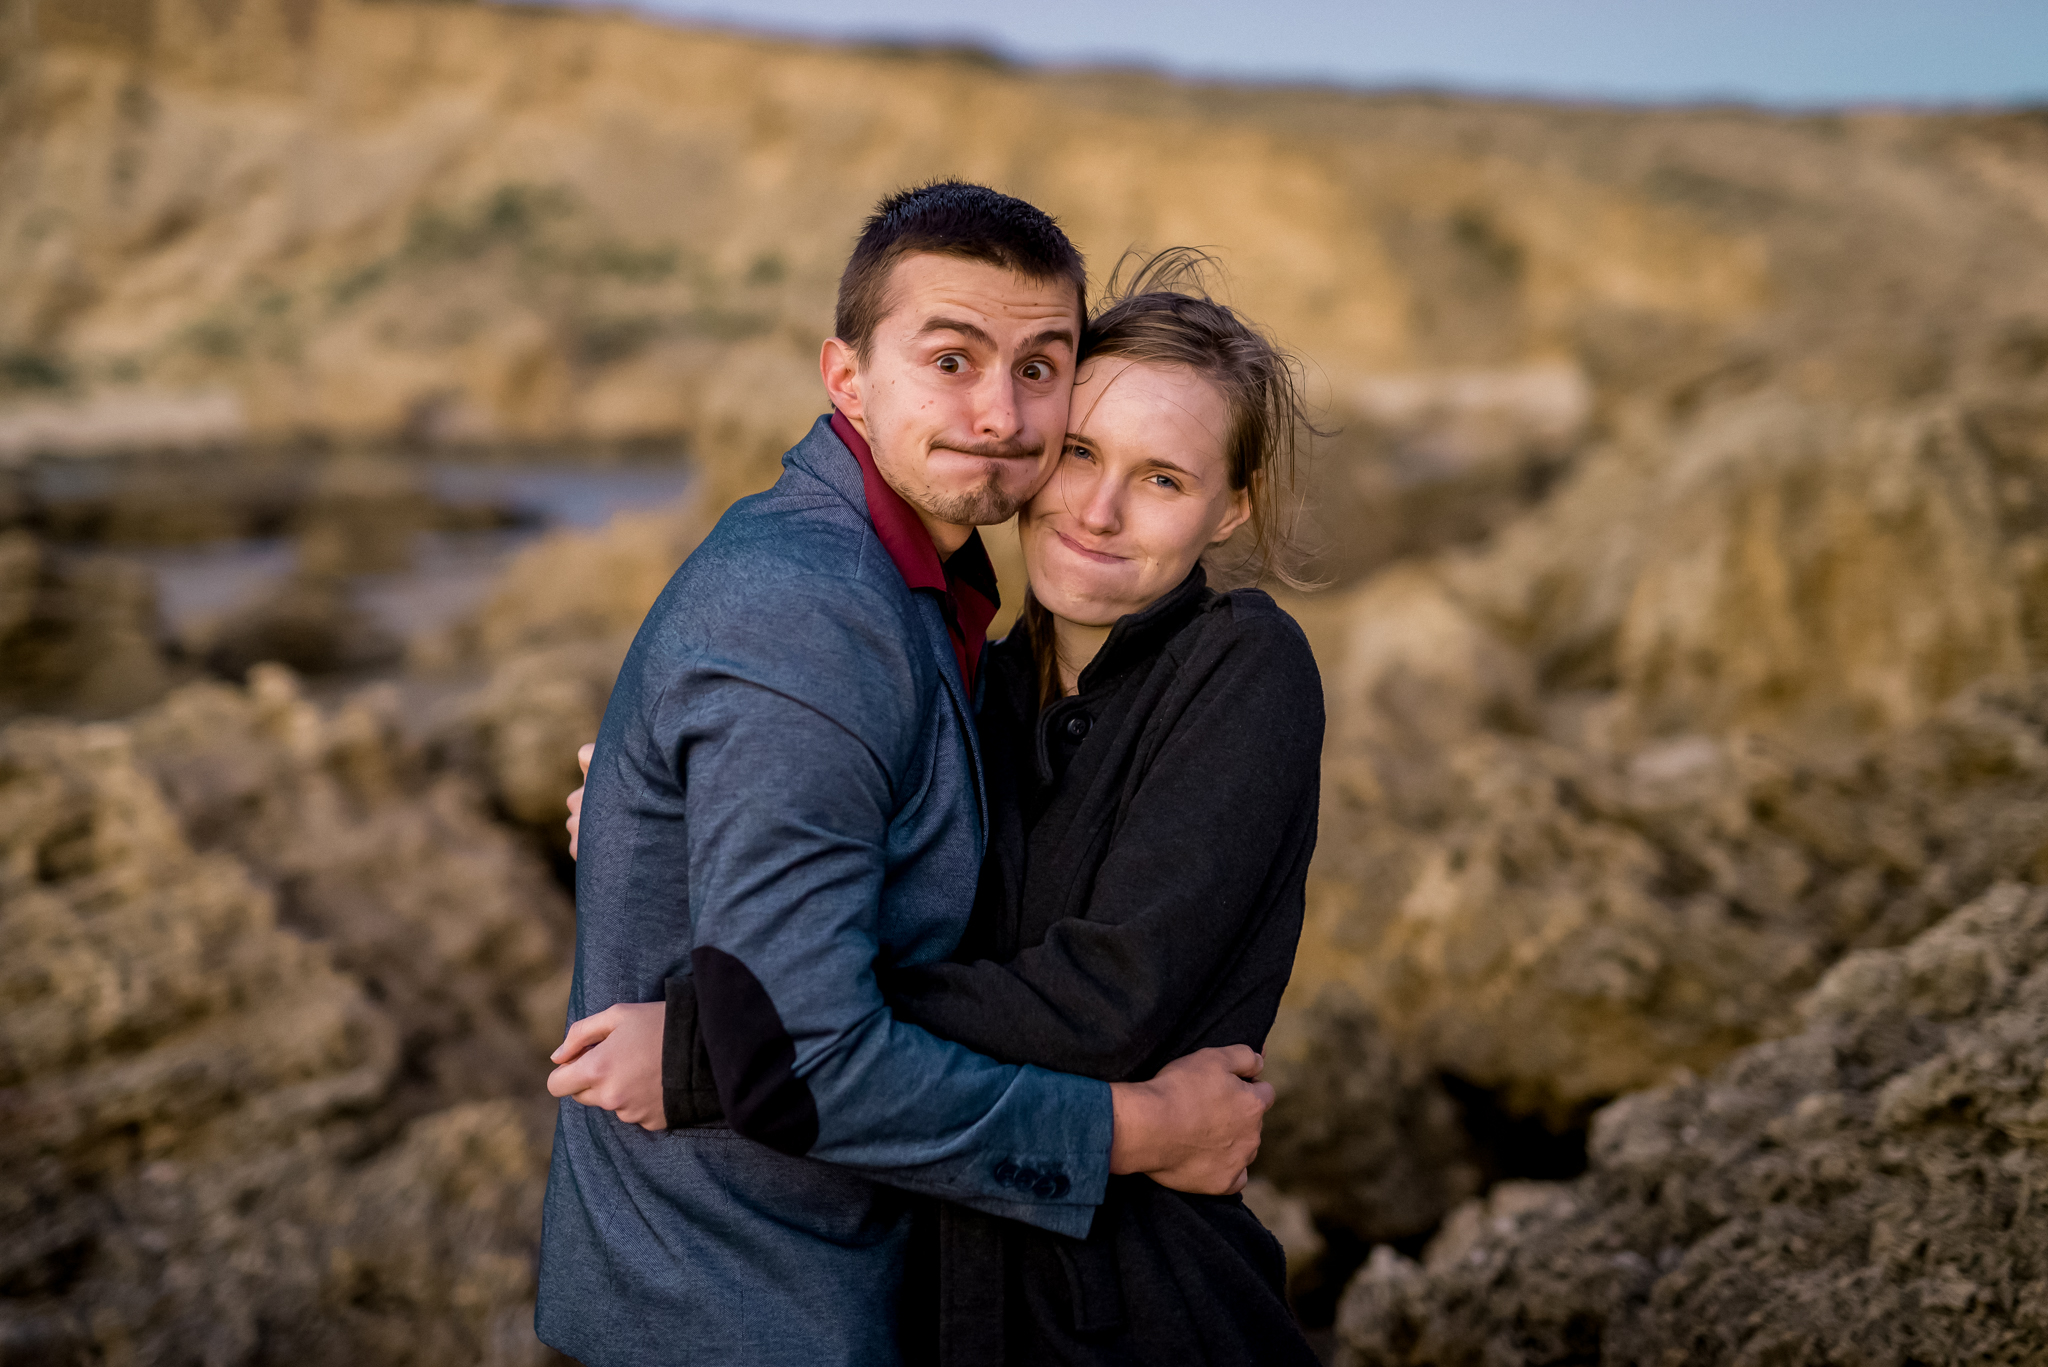 Cliffside-beach-engagement-session-hadera-israel-kate-giryes-photography-9614.jpg